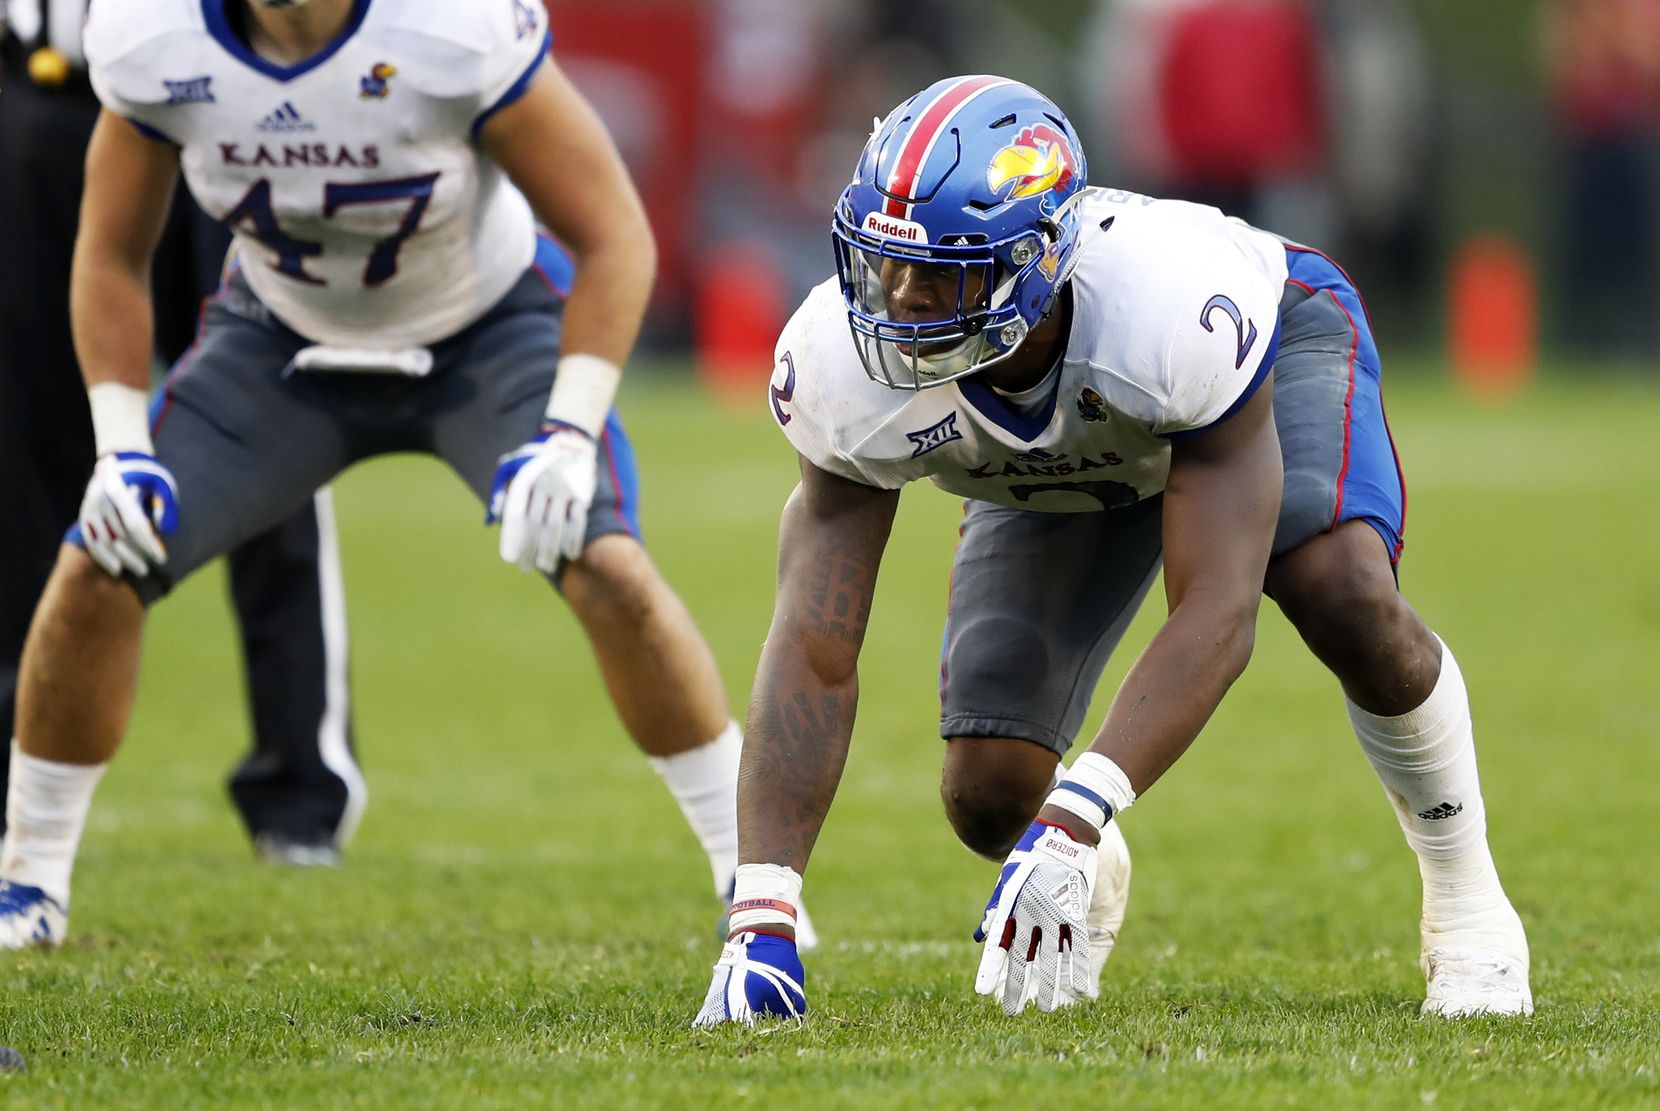 FILE - Kansas defensive end Dorance Armstrong Jr. (2) gets set for a play during the second half of an NCAA college football game against Iowa State, Saturday, Oct. 14, 2017, in Ames, Iowa. (AP Photo/Charlie Neibergall)